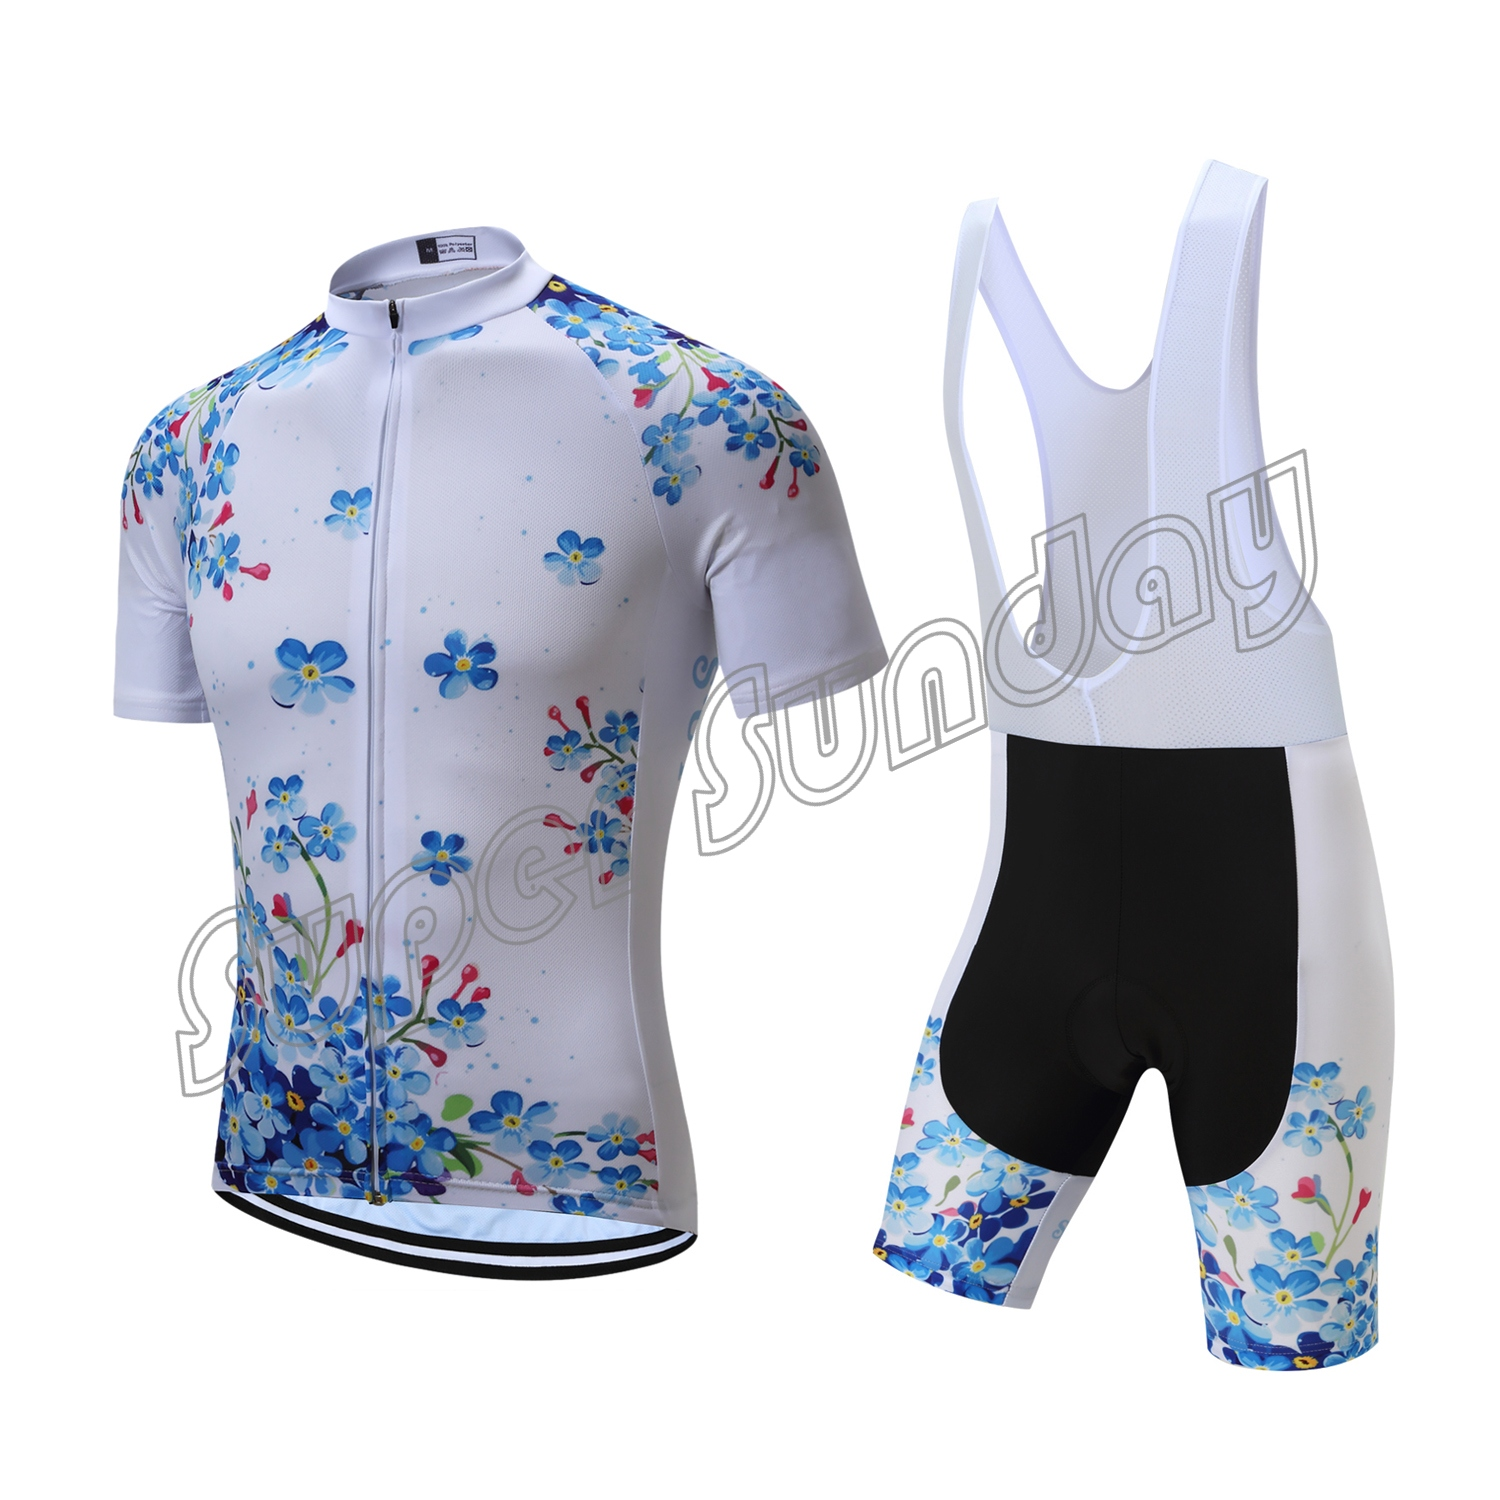 High Quality Team Cycling Jerseys Men s cycling Sportwears Short Sleeve Bicycle  Racing Jersey Outdoor Suits Free 5fd76e8cd